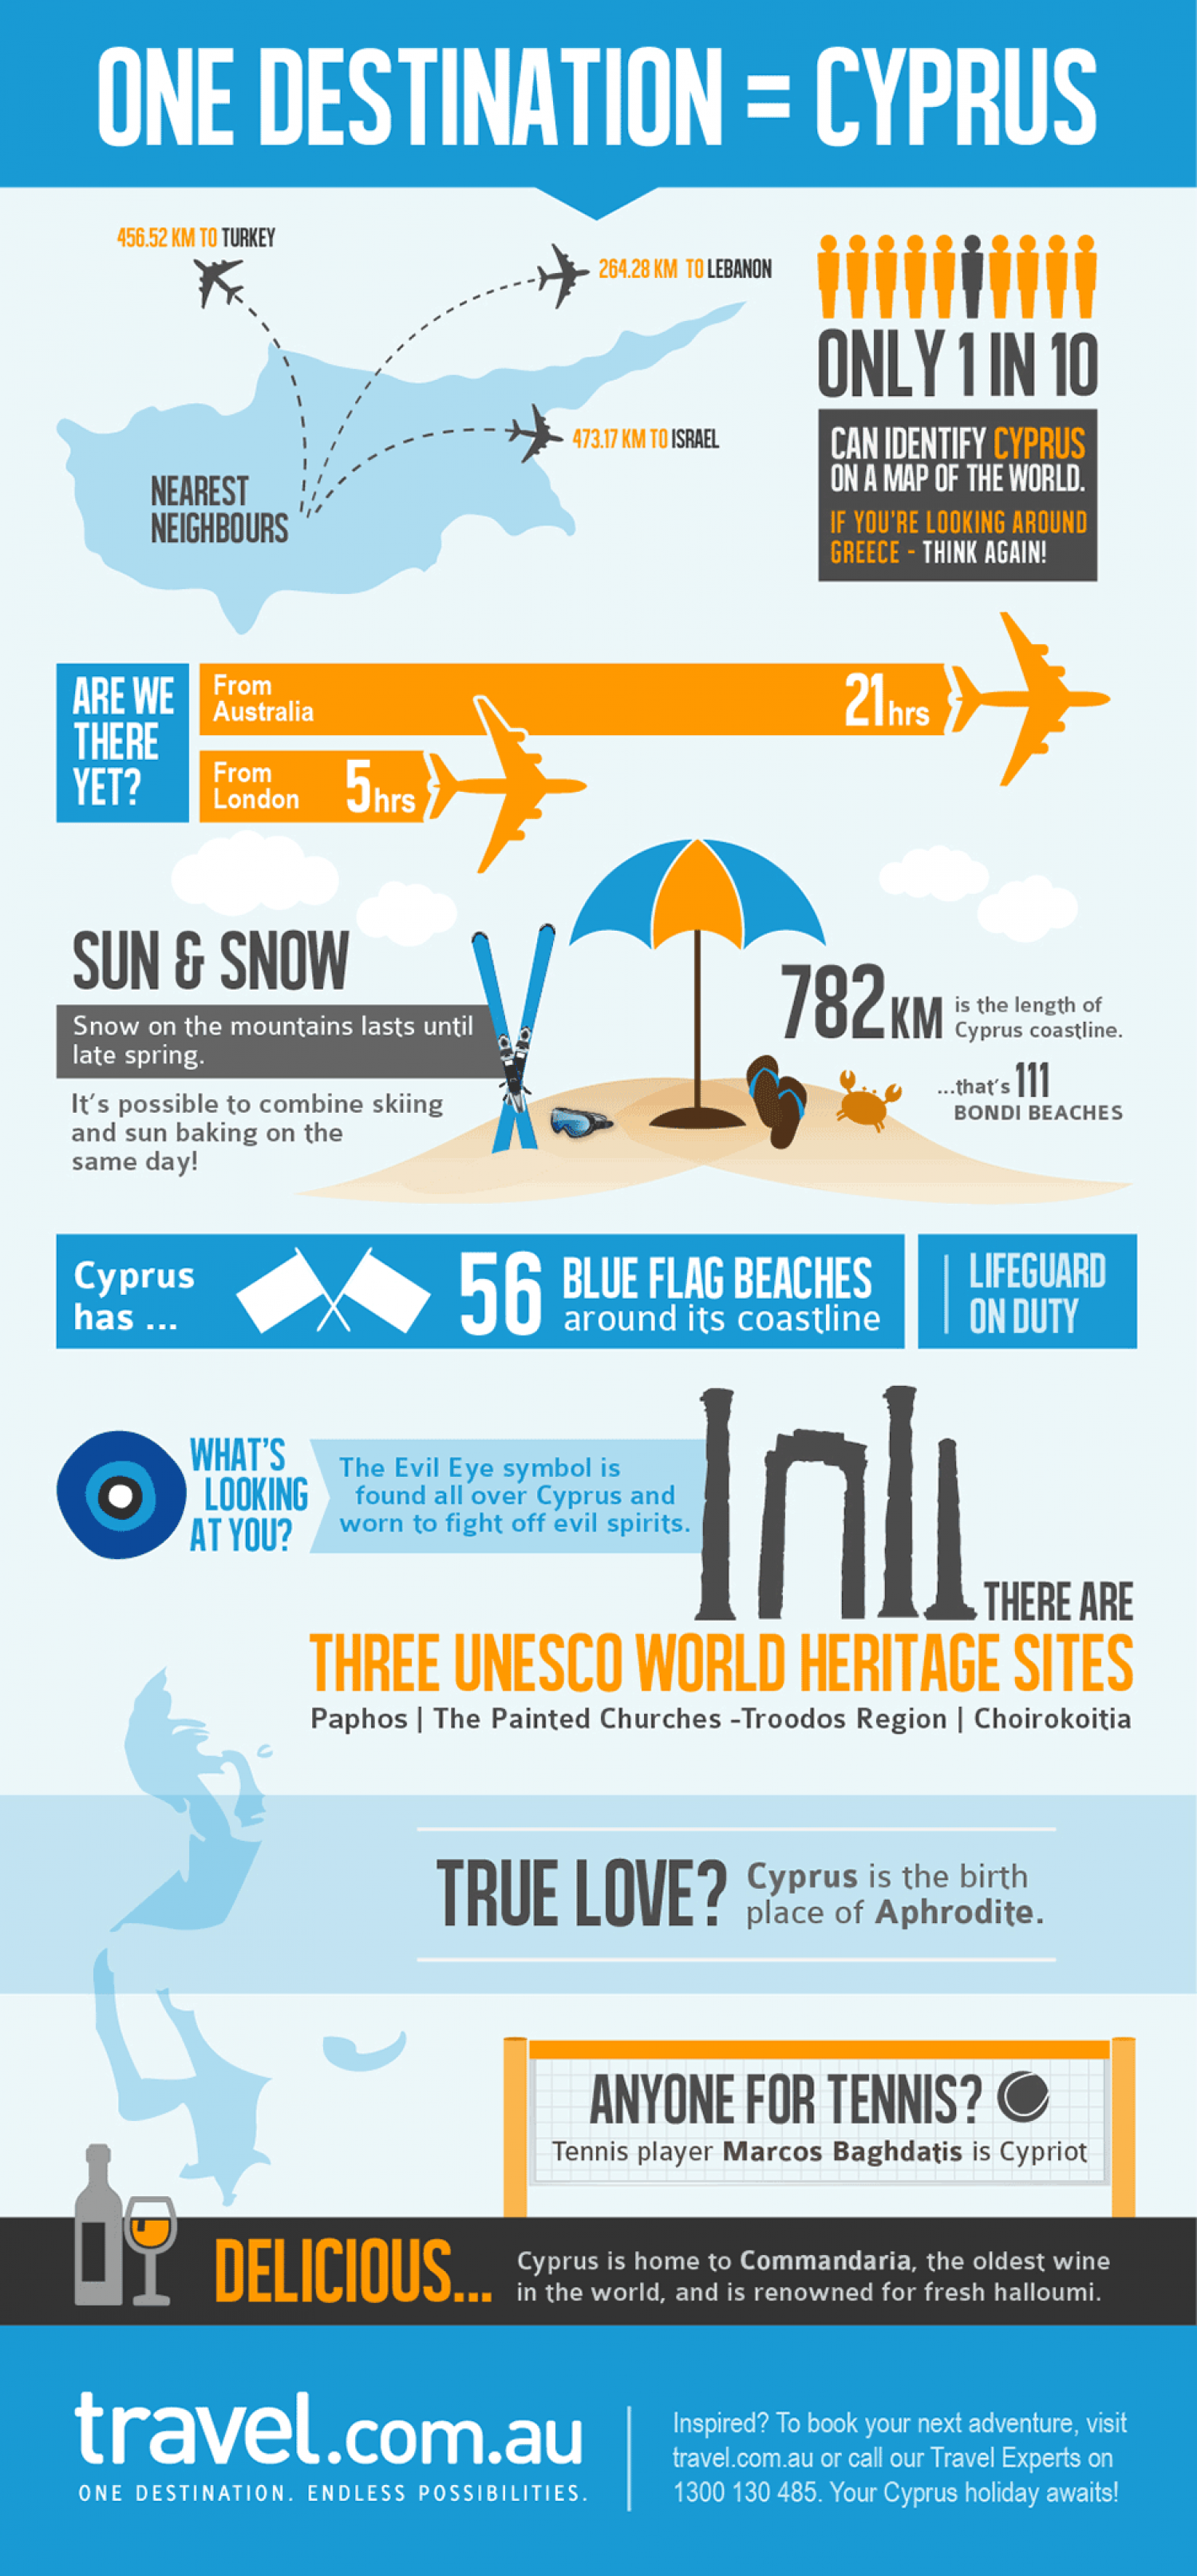 One Destination: Cyprus Infographic